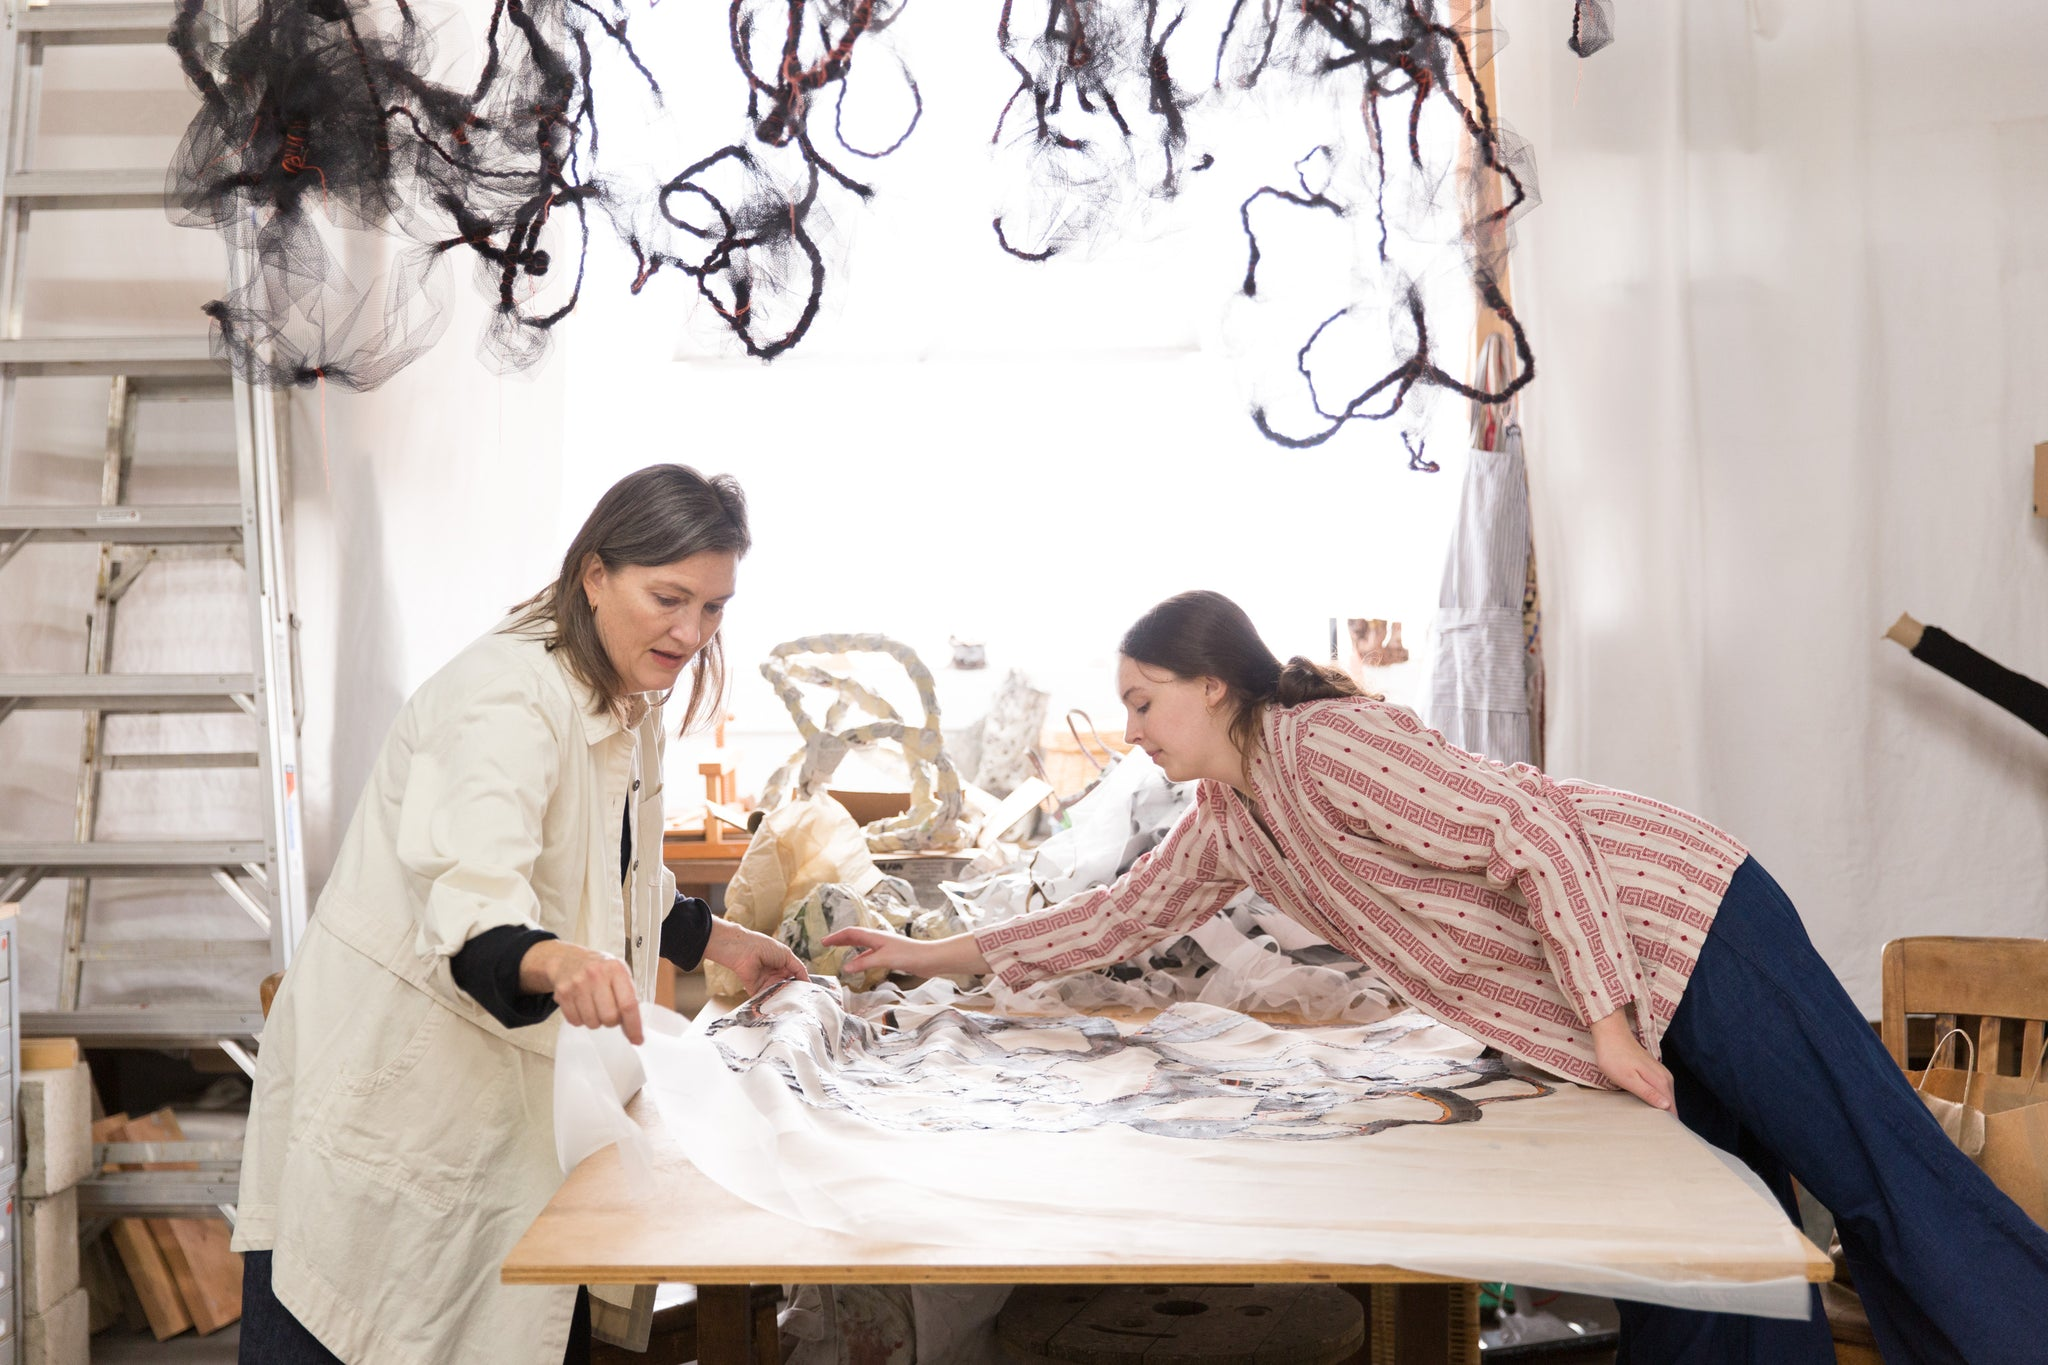 artist Laura Cooper and her daughter at table in artist's studio